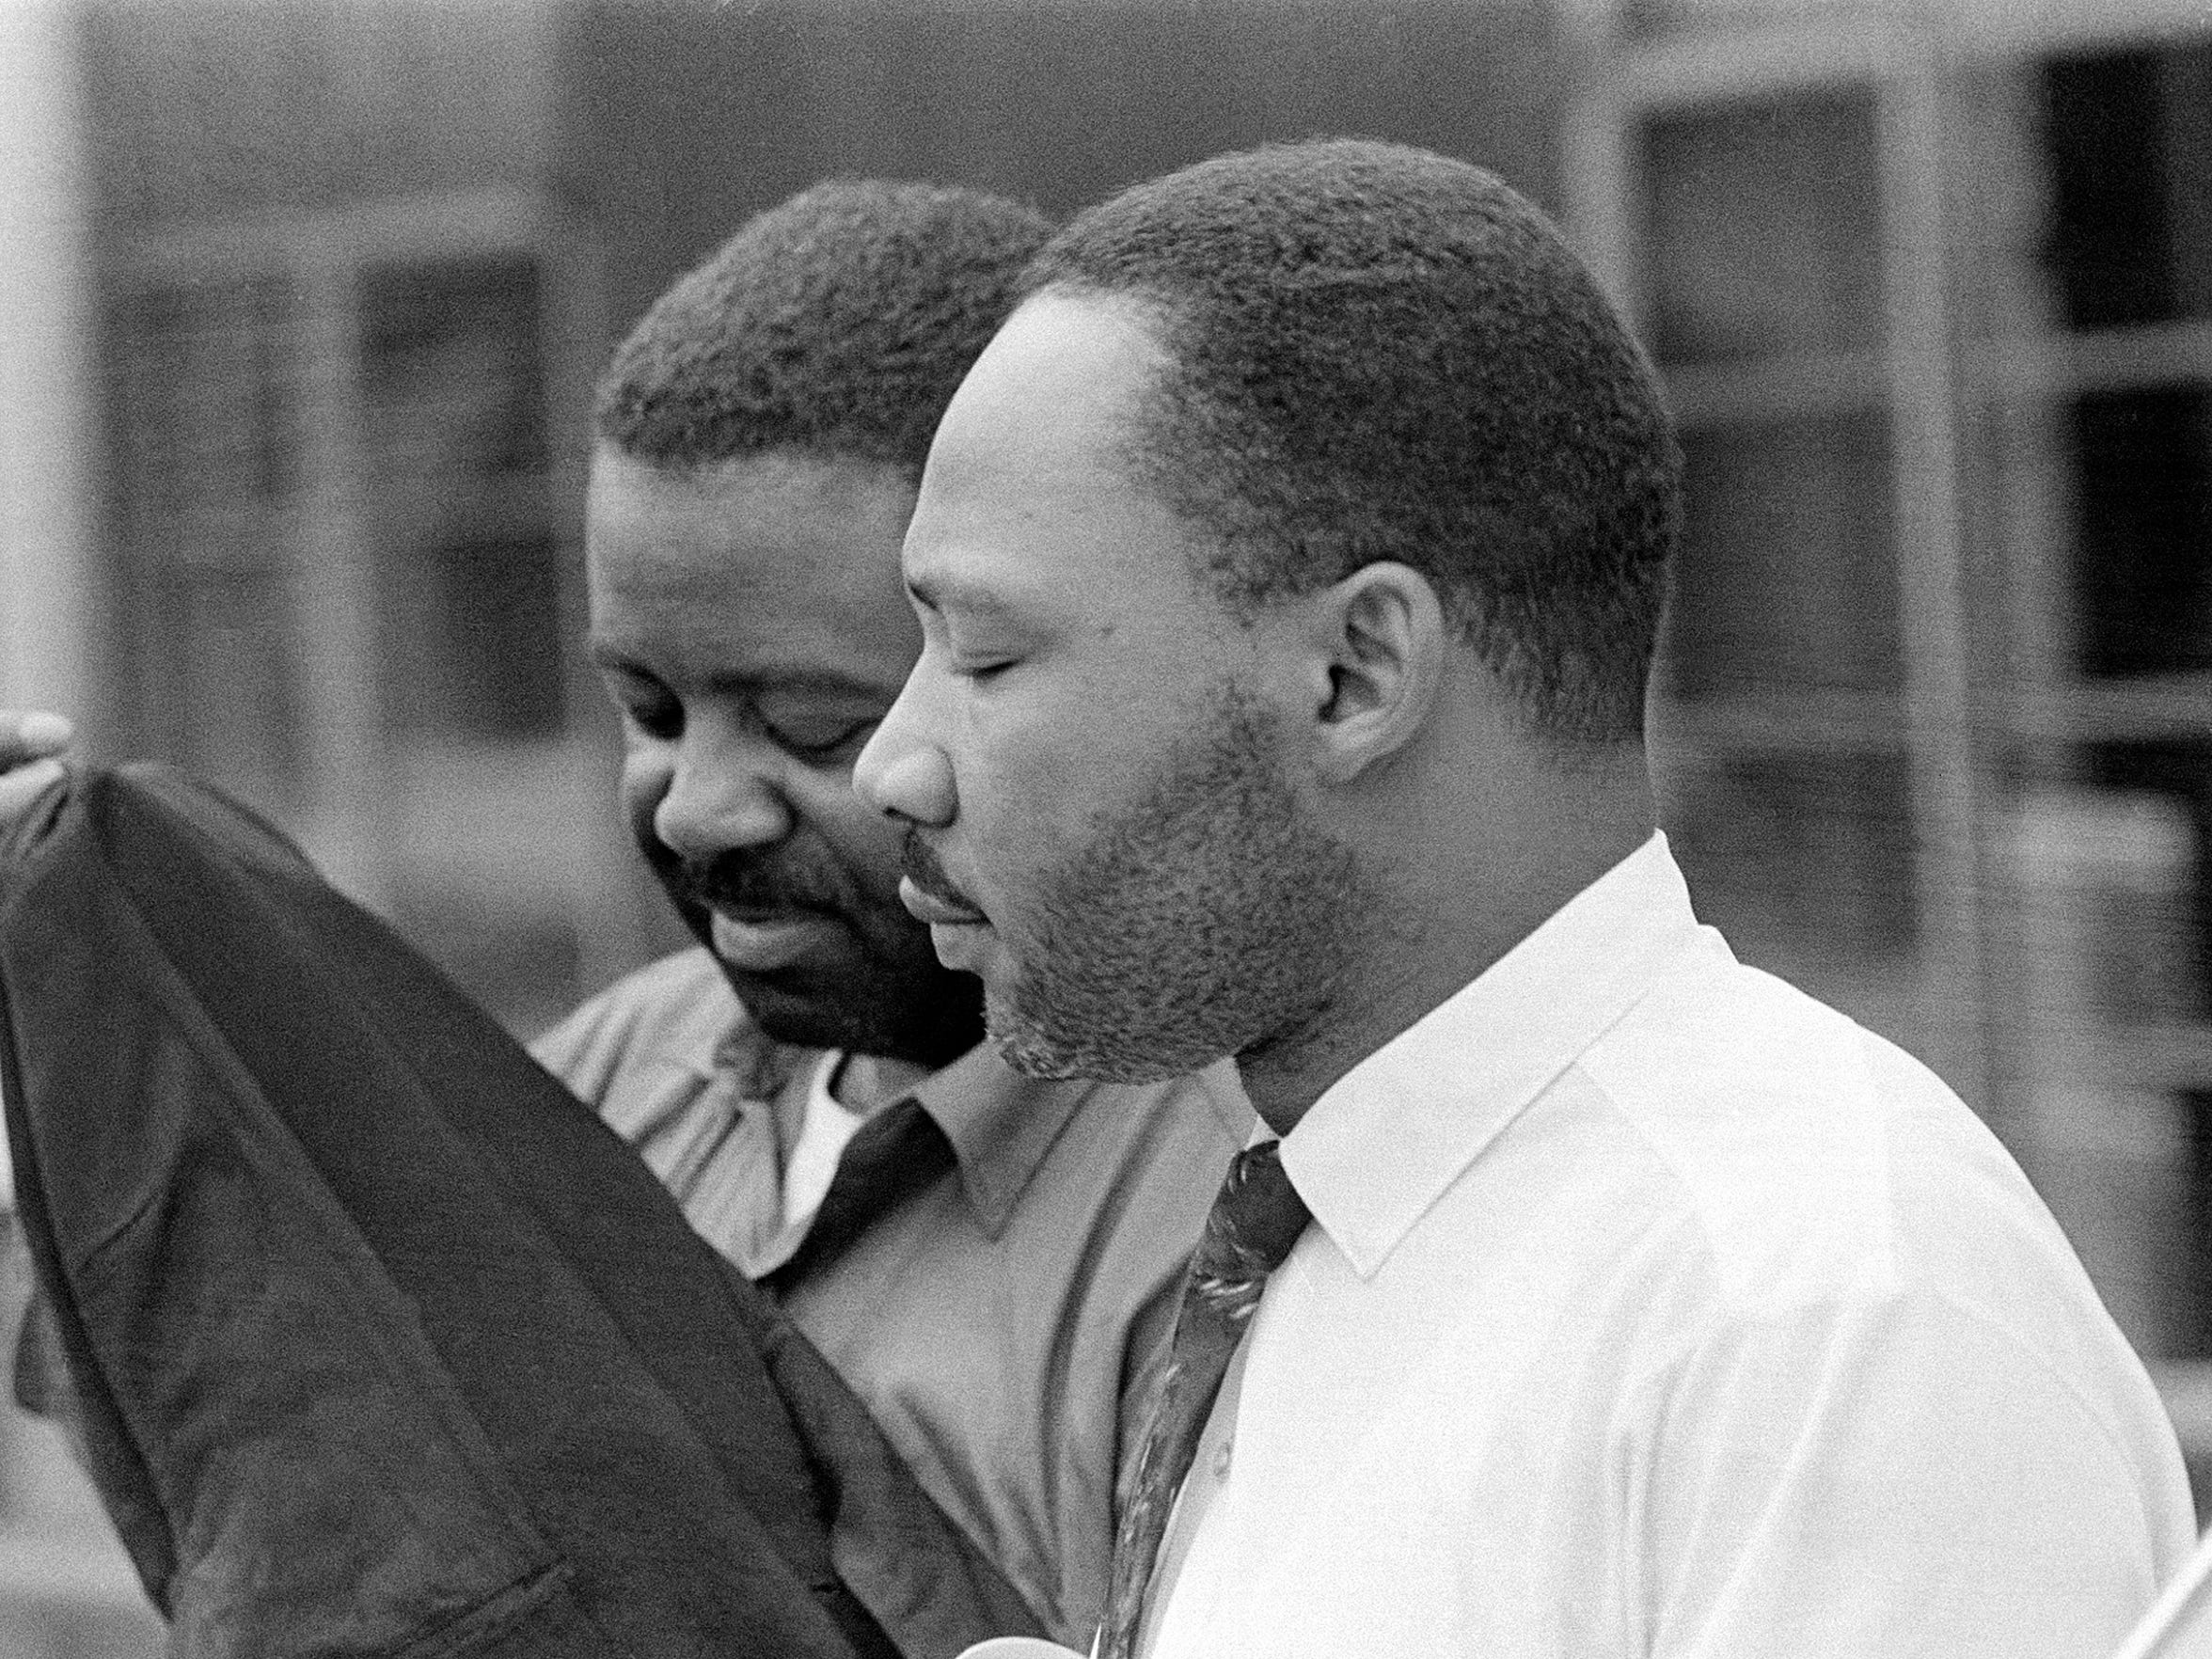 The Rev. Martin Luther King Jr., right, and his close associate, Rev. Ralph Abernathy, are released from a jail in Birmingham, Ala., on April 20, 1963.